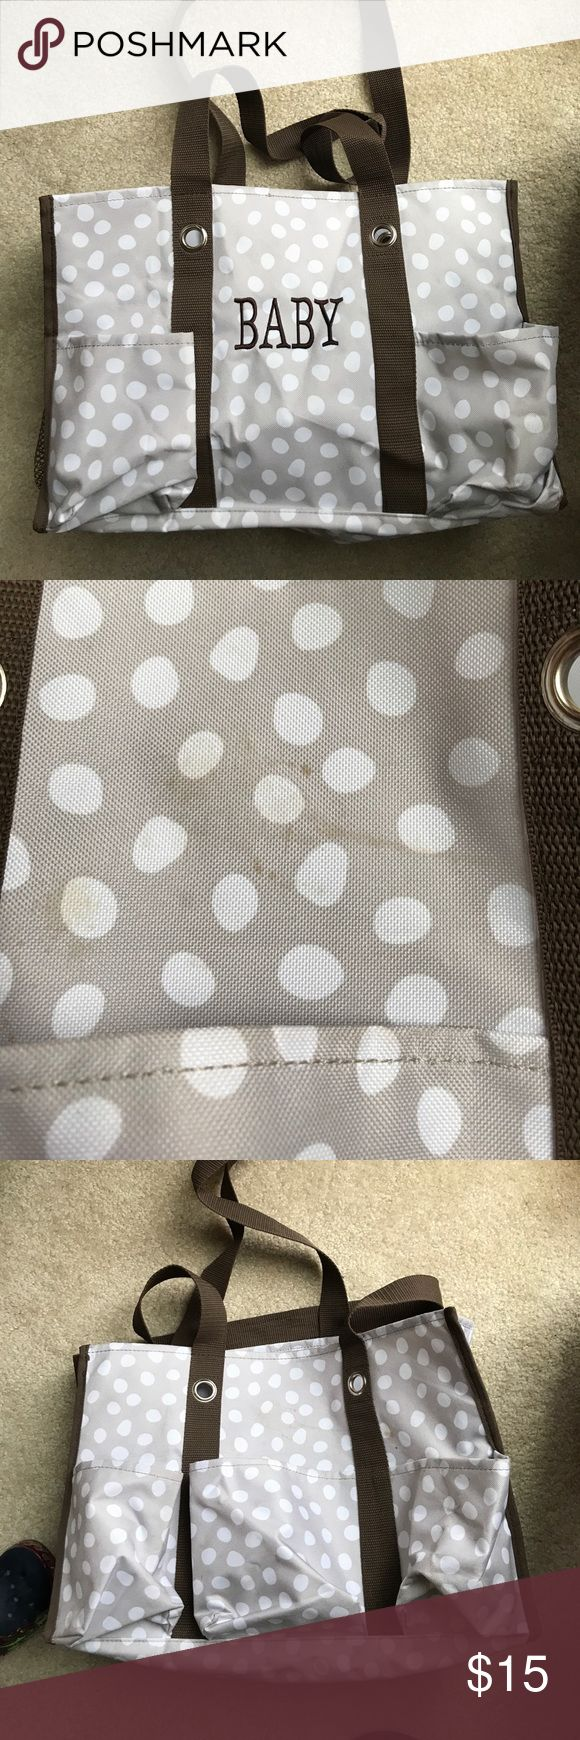 Thirty one baby 👶🏻 diaper bag EUC - shape is good. Has mark on outside and a few inside . Didn't try cleaning it. Priced accordingly Bags Baby Bags